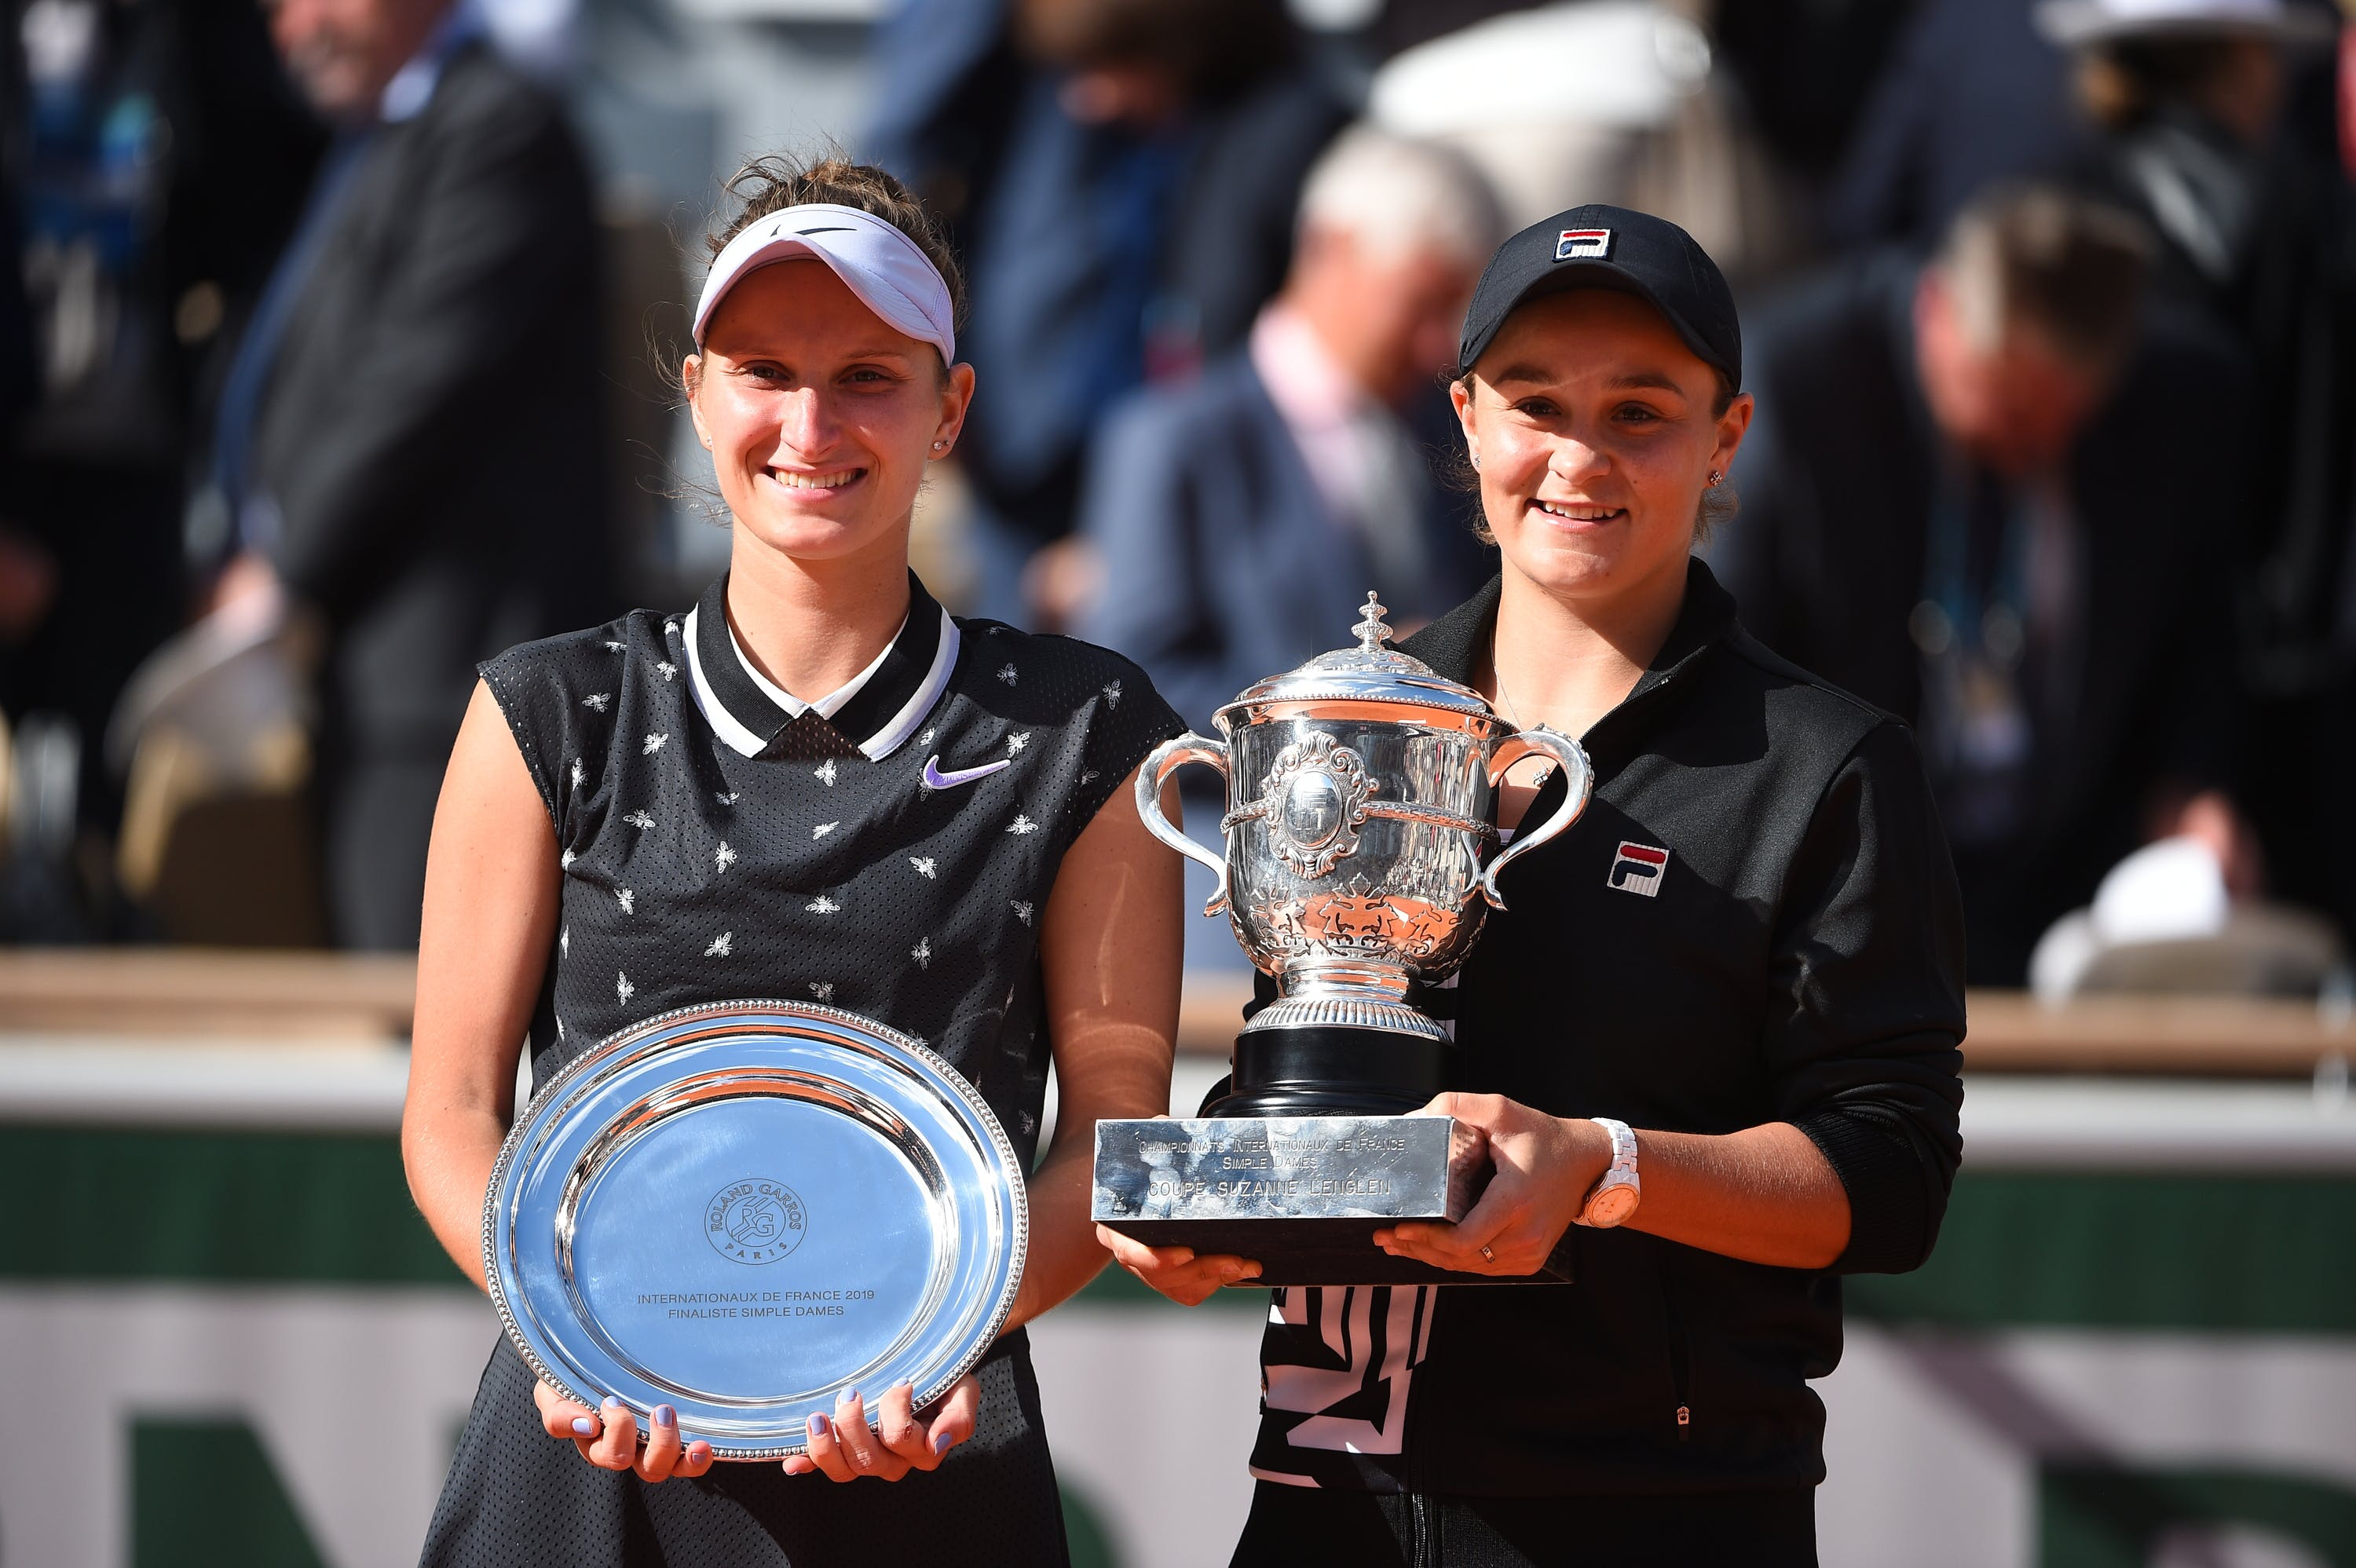 Barty & Vondrousova during the trophy ceremony at Roland-Garros 2019